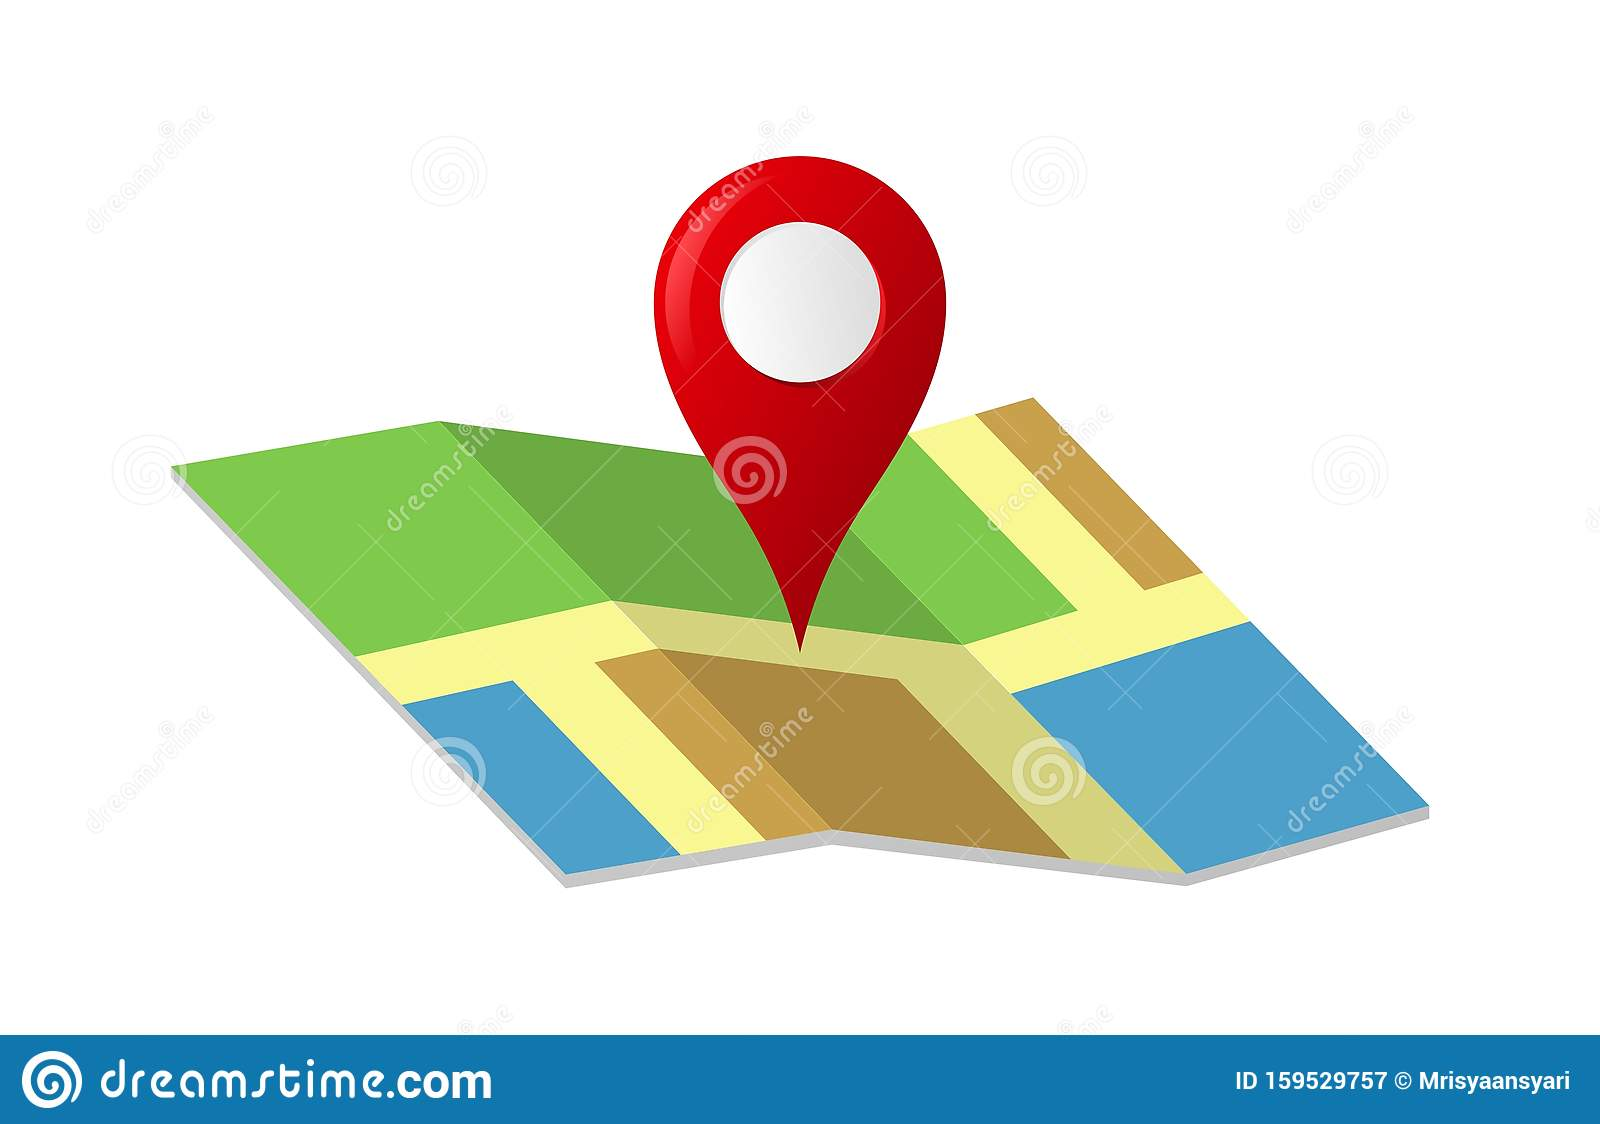 map with a red pin icon stock vector illustration of graphic 159529757 https www dreamstime com map red pin locator concept clipart design illustrator vector map pin location address company isolated image159529757